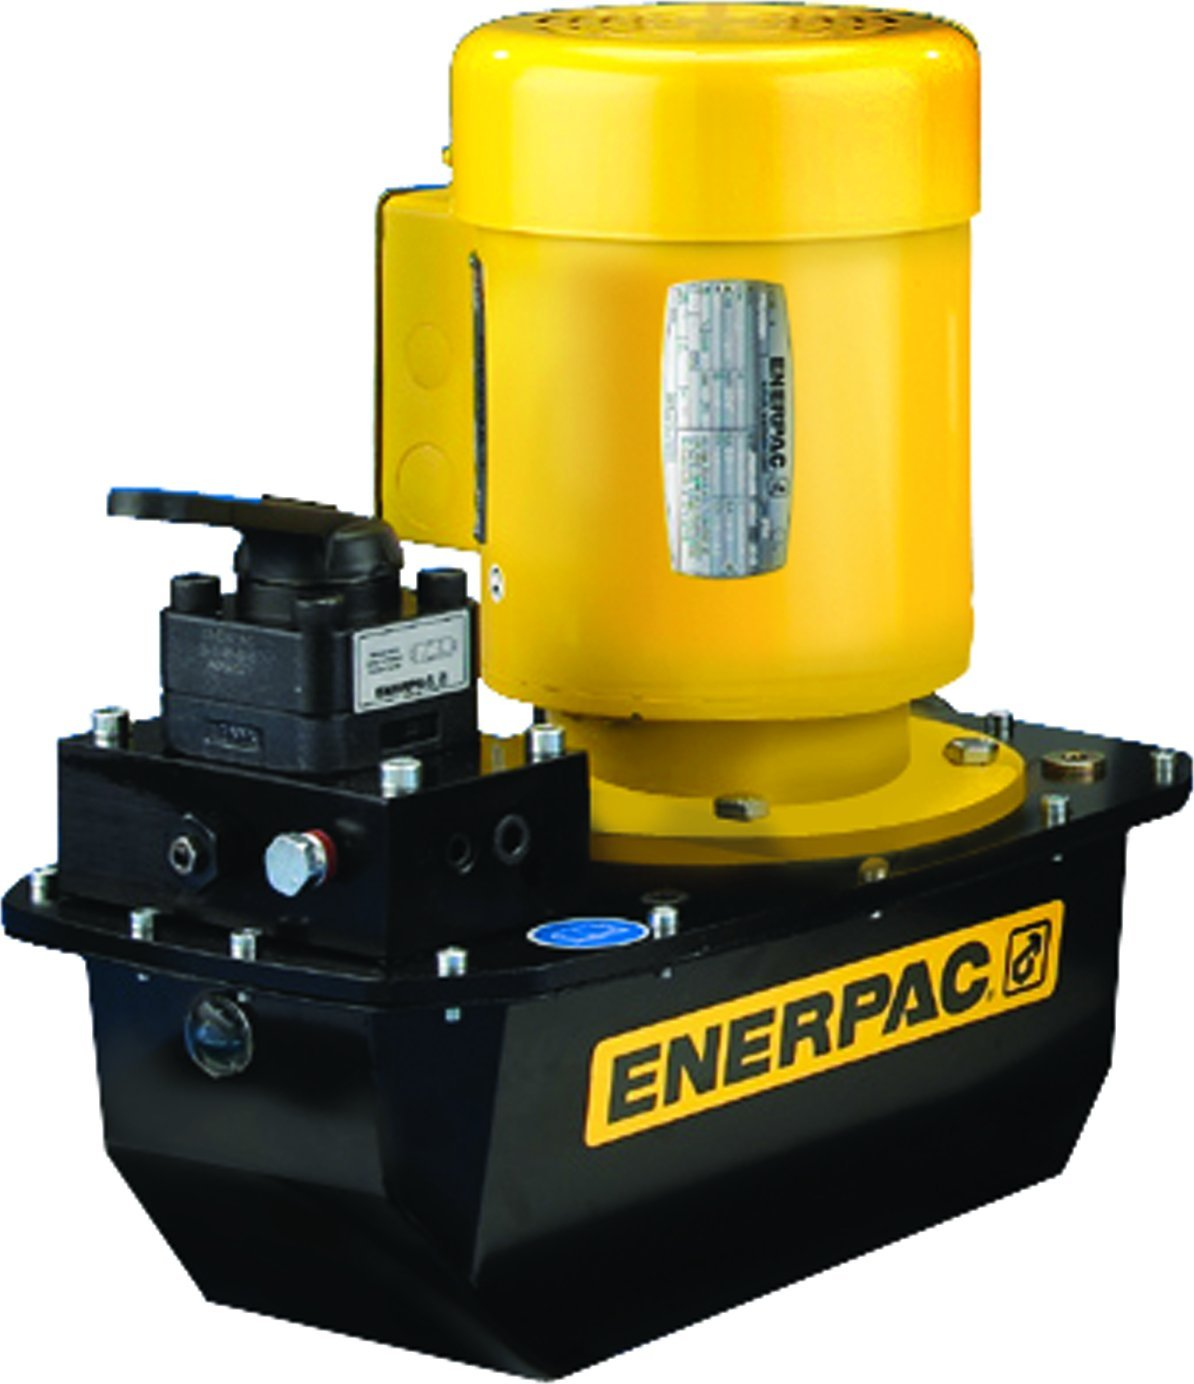 Enerpac ZE3204MB Electric Induction Pump with VM32 Valve Standard 115 Volt and 4 Liters Usable Oil Capacity